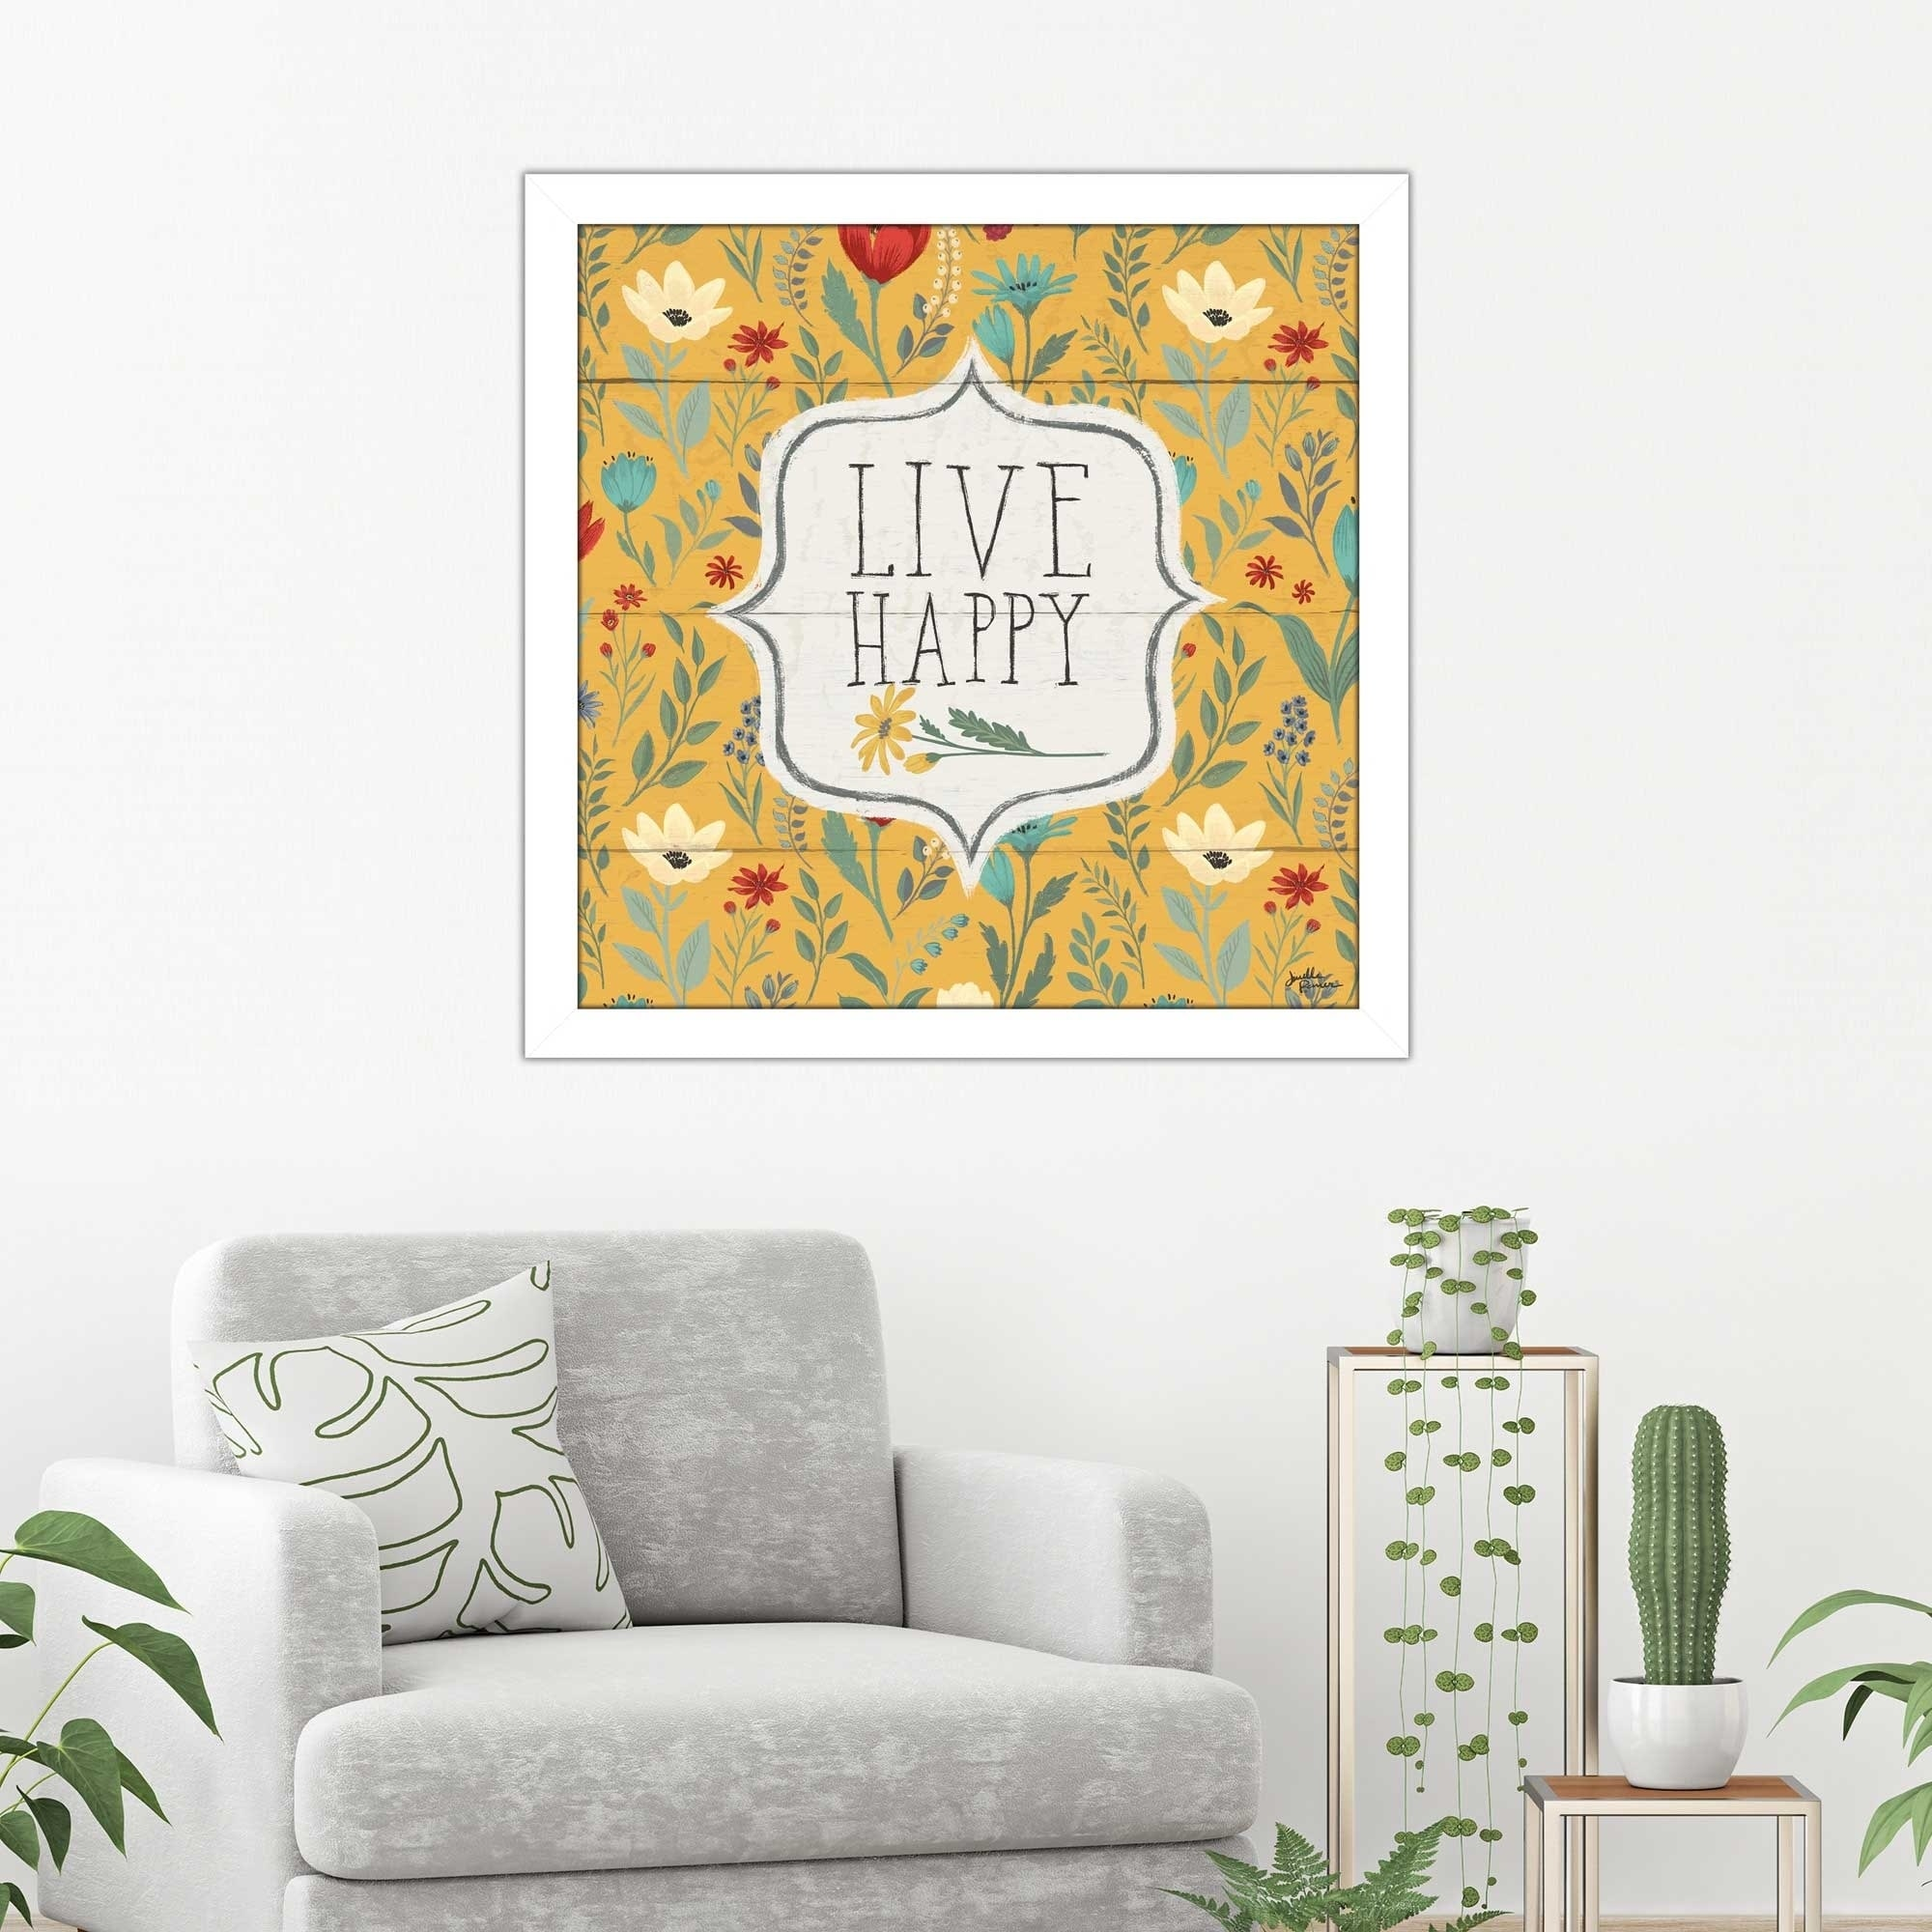 Dorable Heart Wall Decorations Illustration - The Wall Art ...